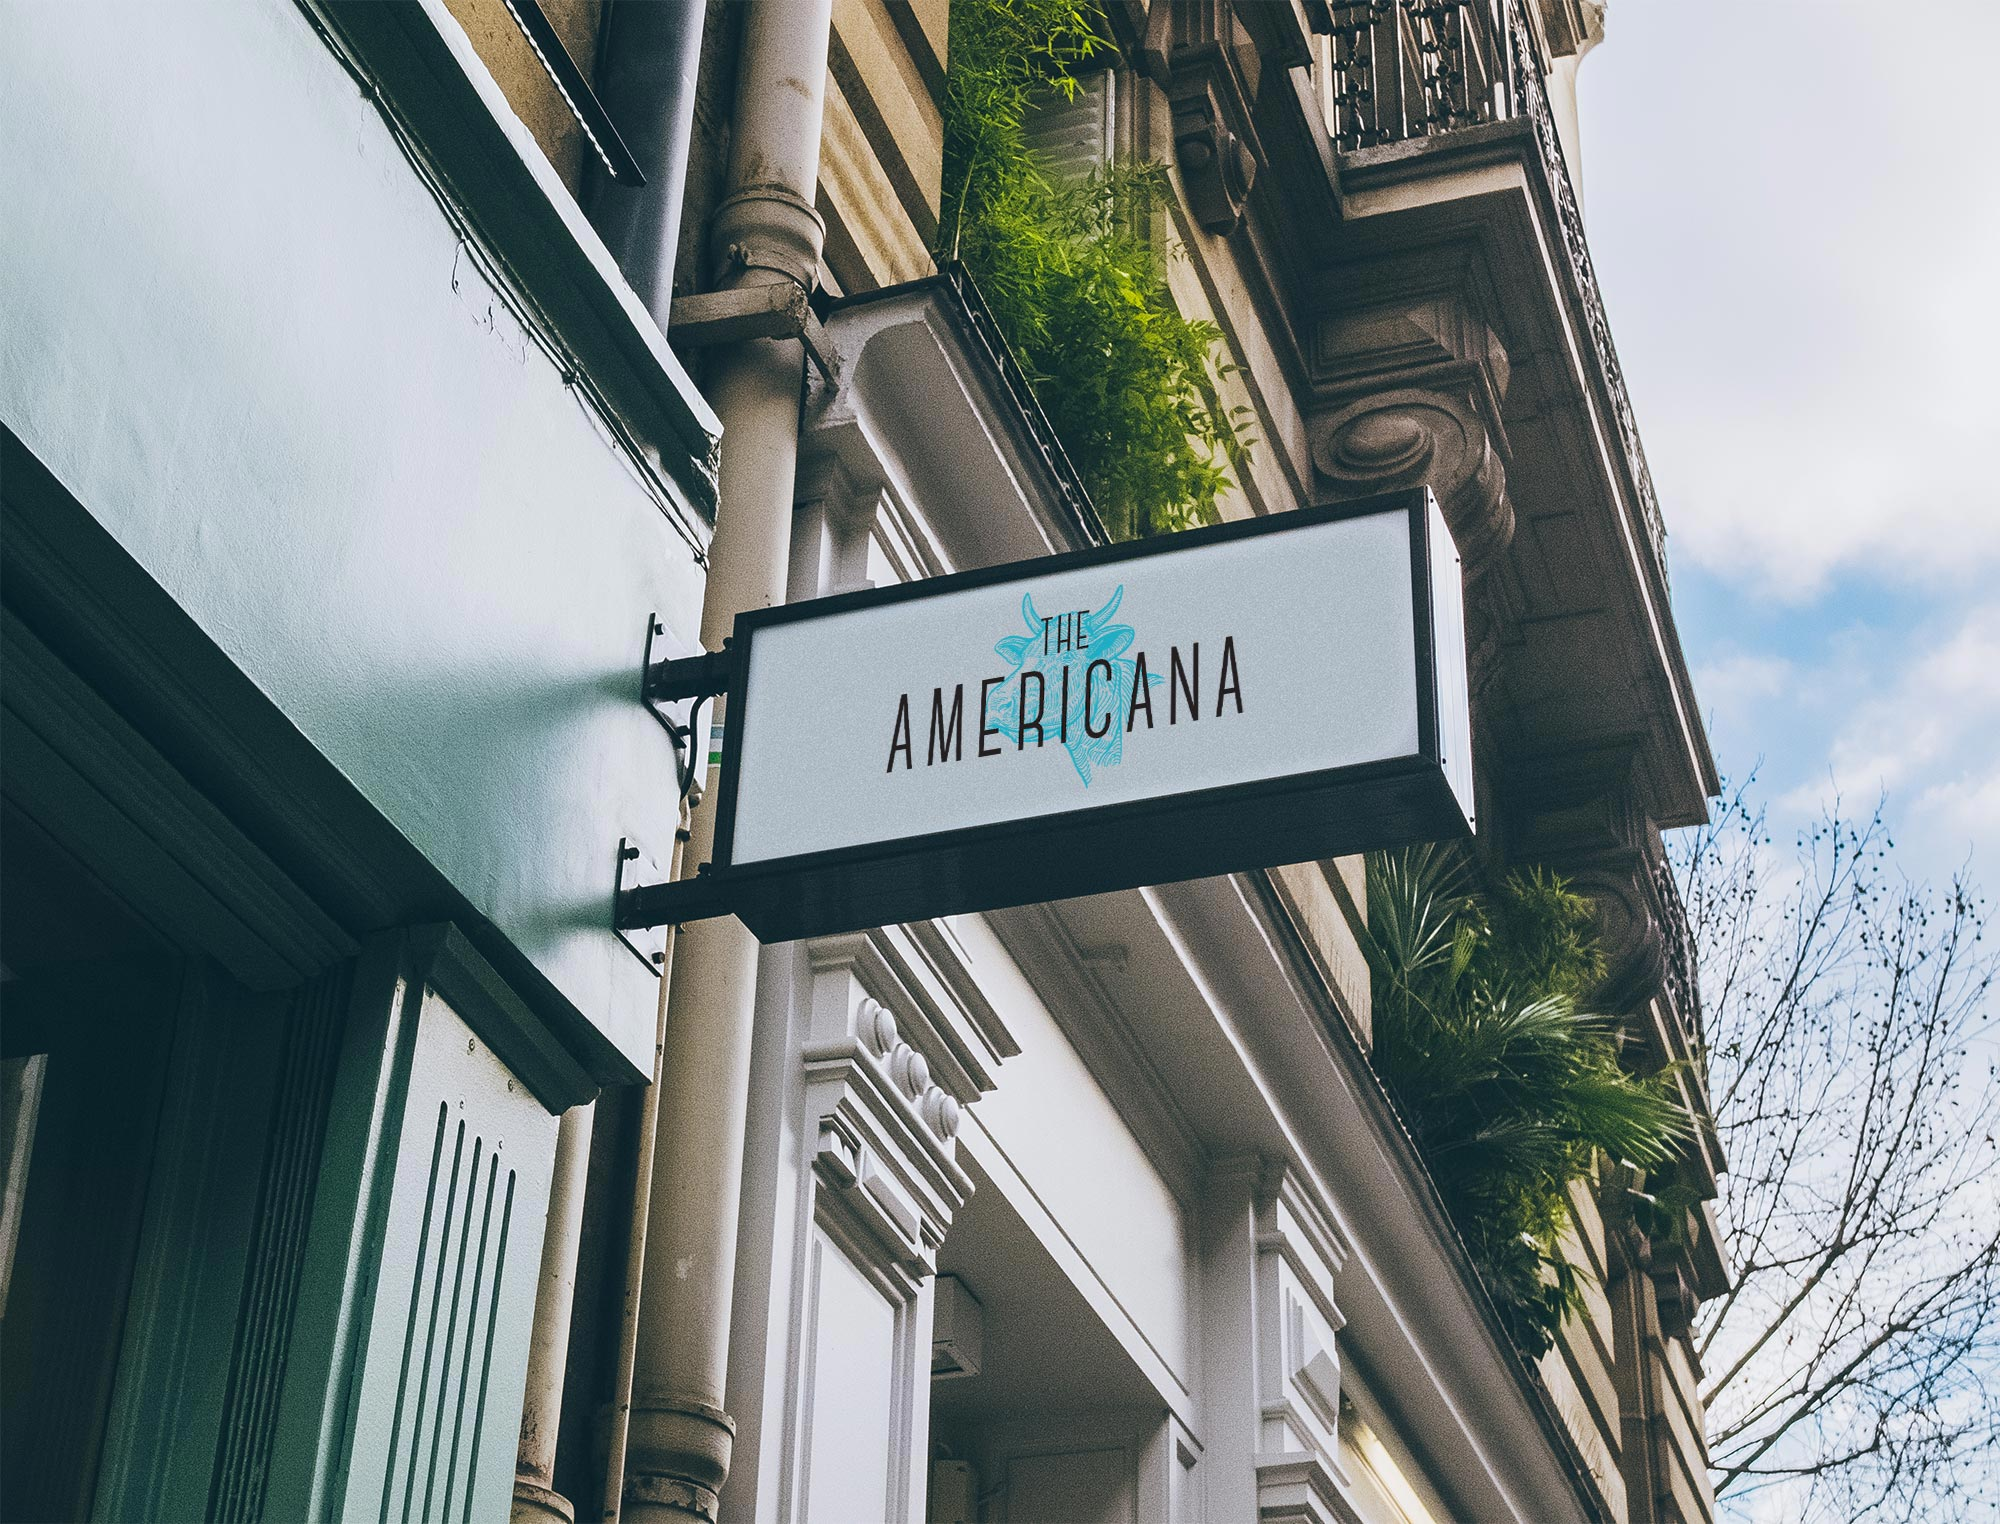 The Americana outside sign design